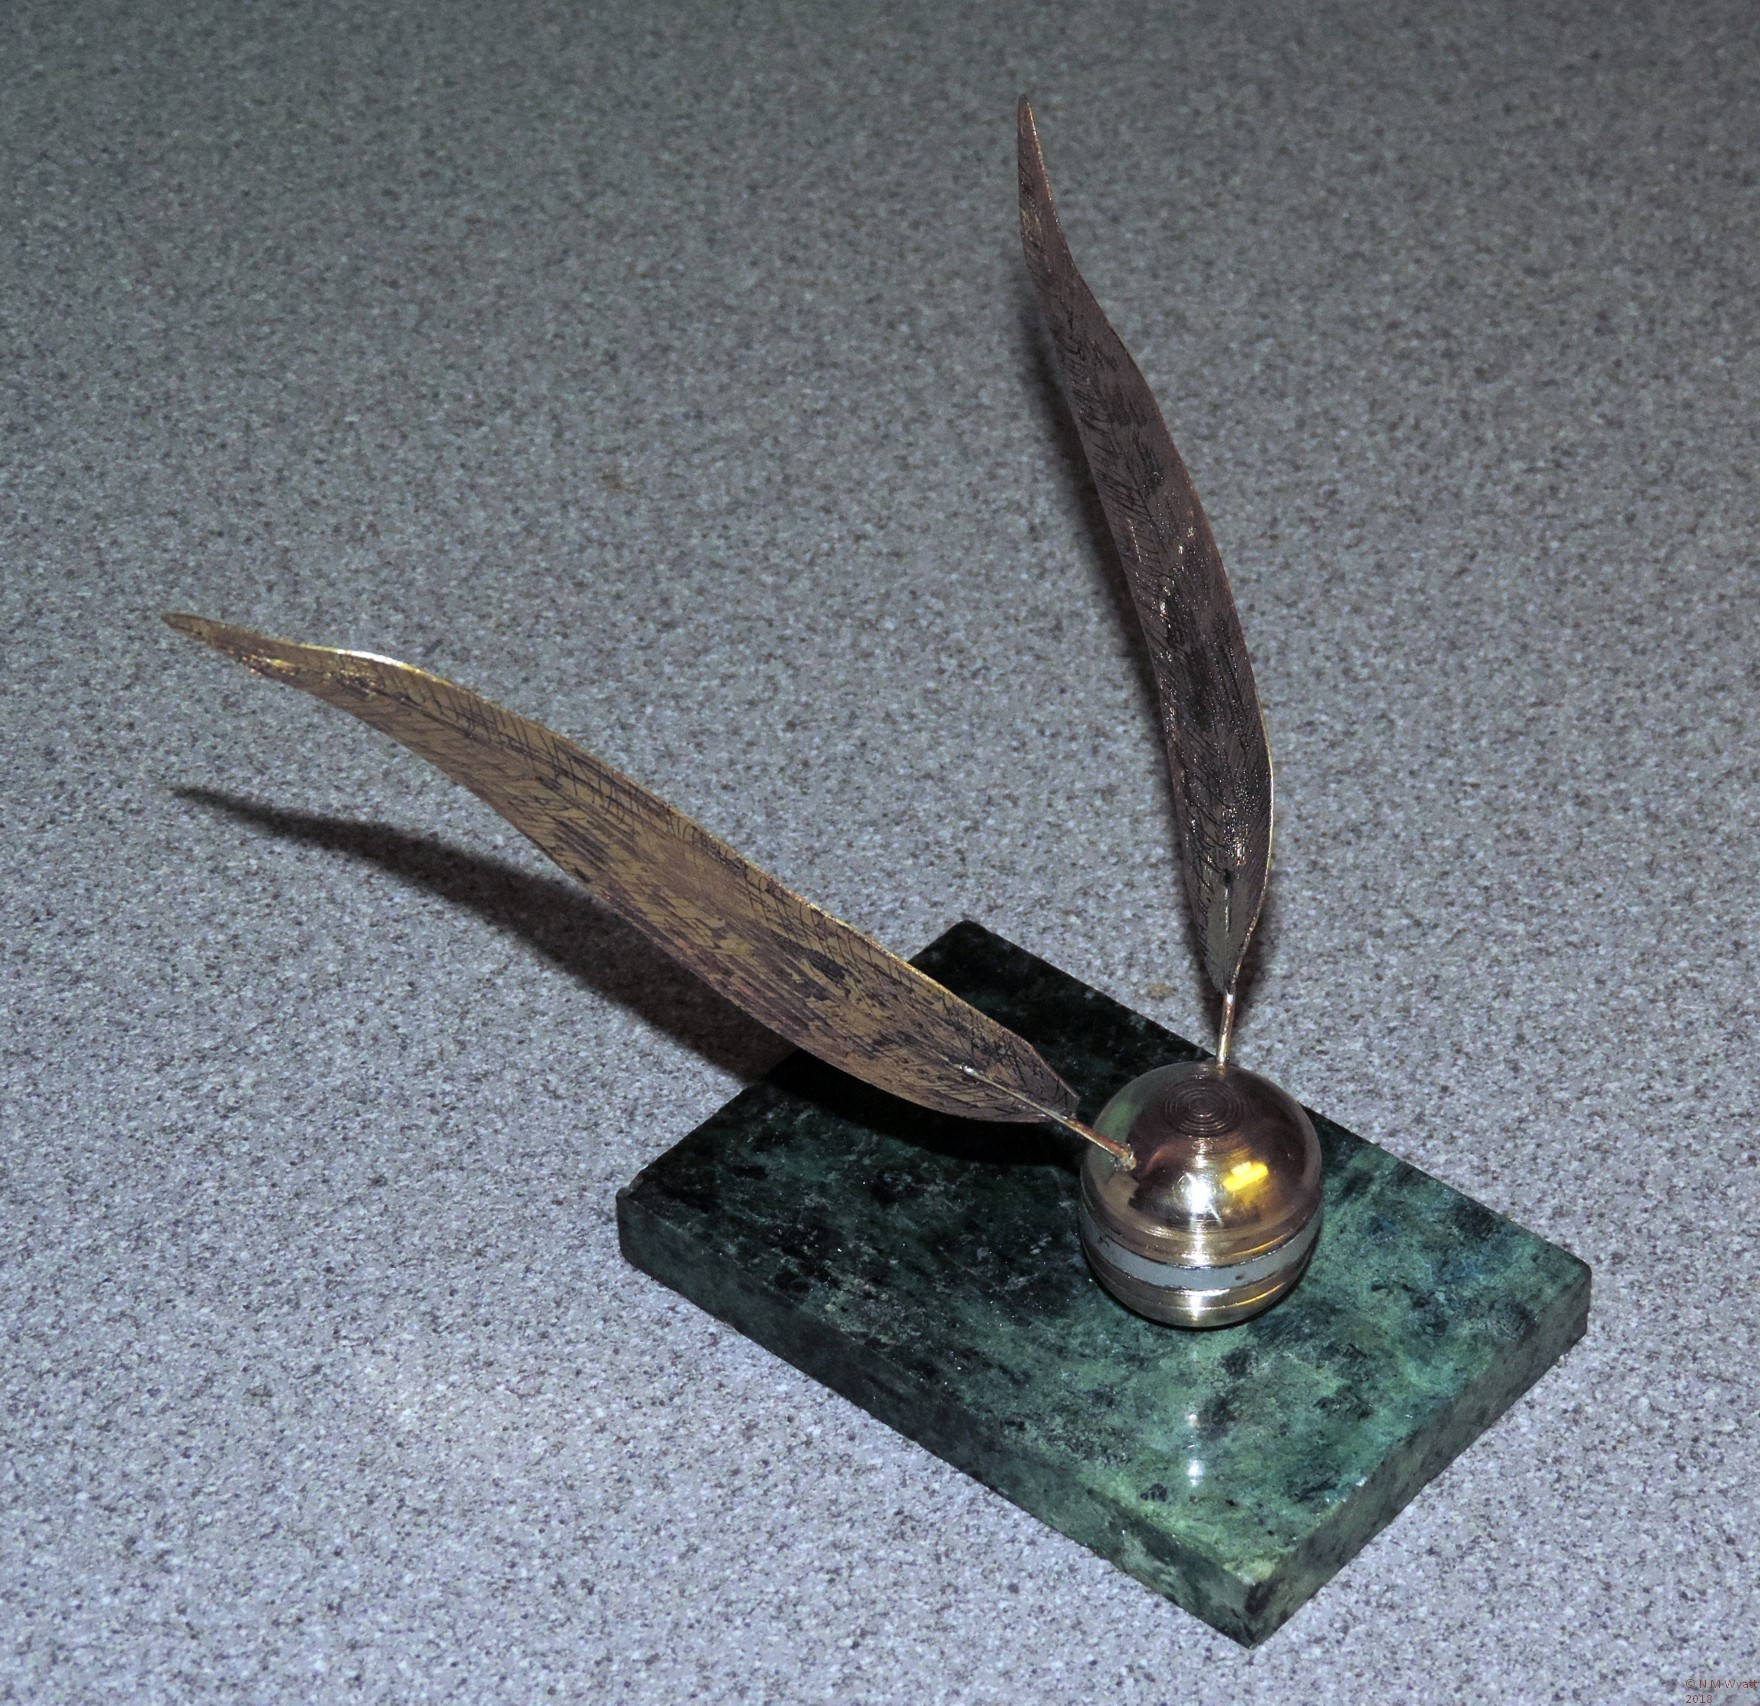 Full size golden snitch model